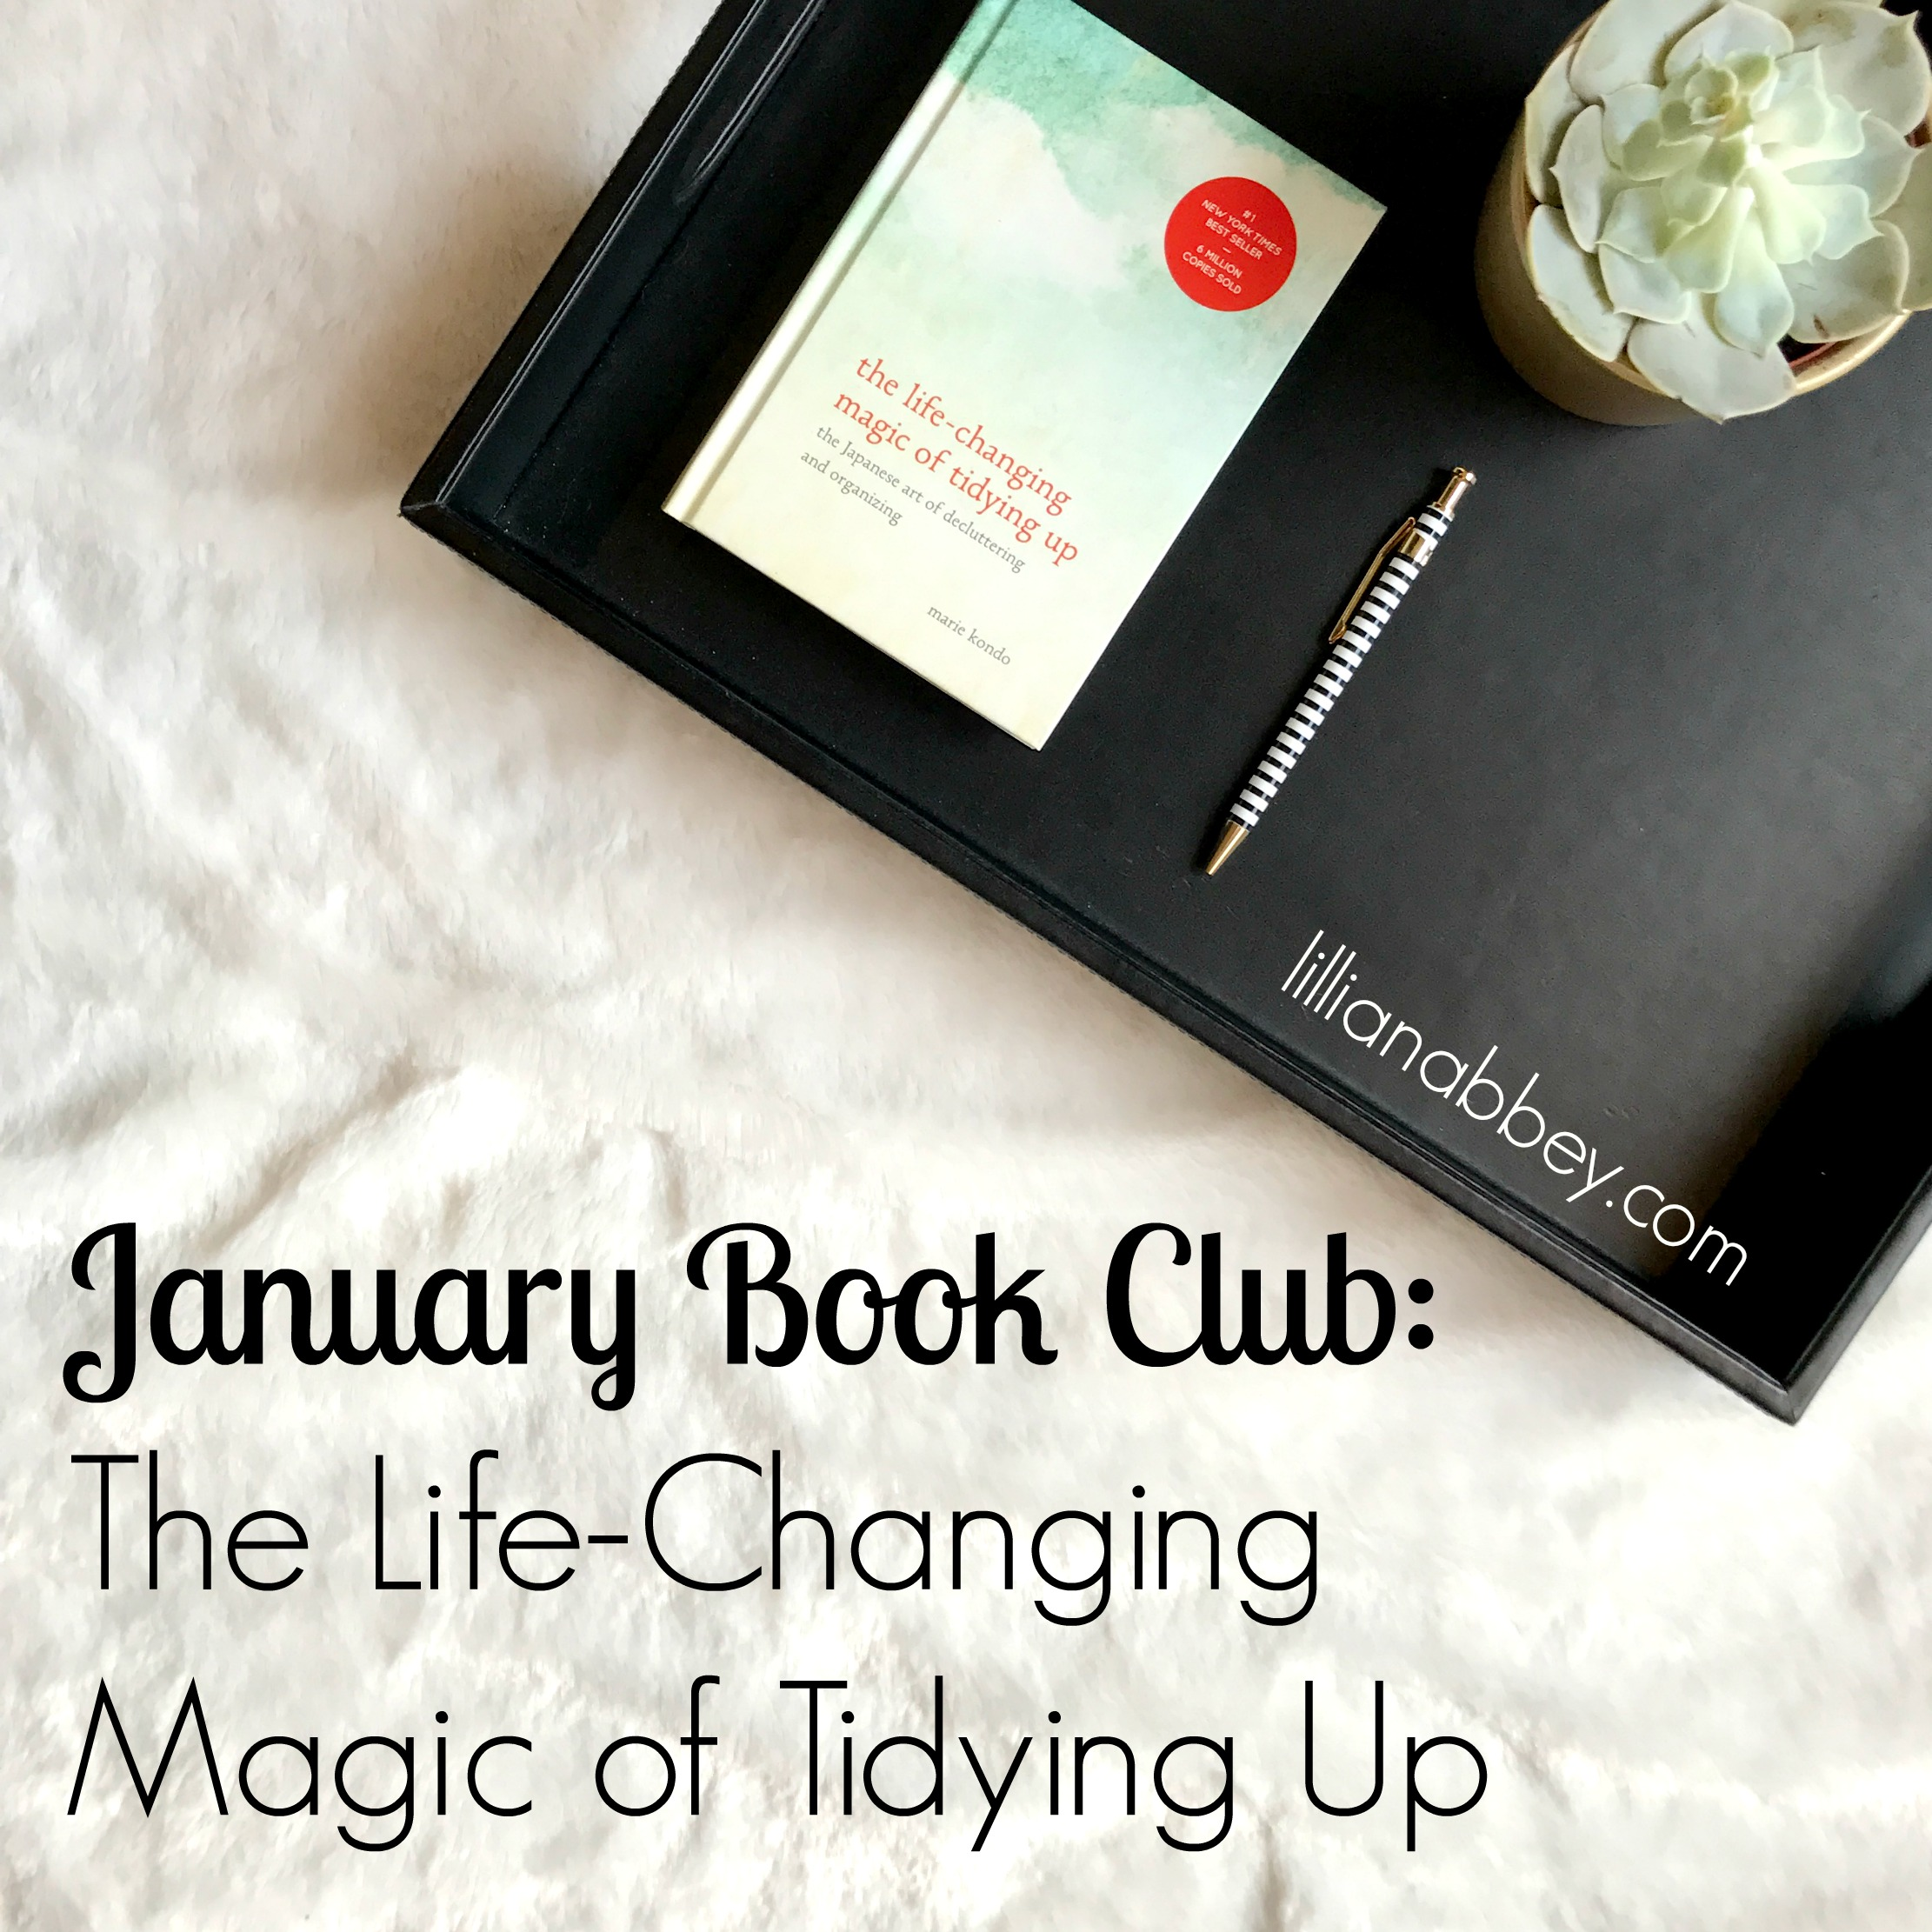 January Book Club: The Life-Changing Magic of Tidying Up